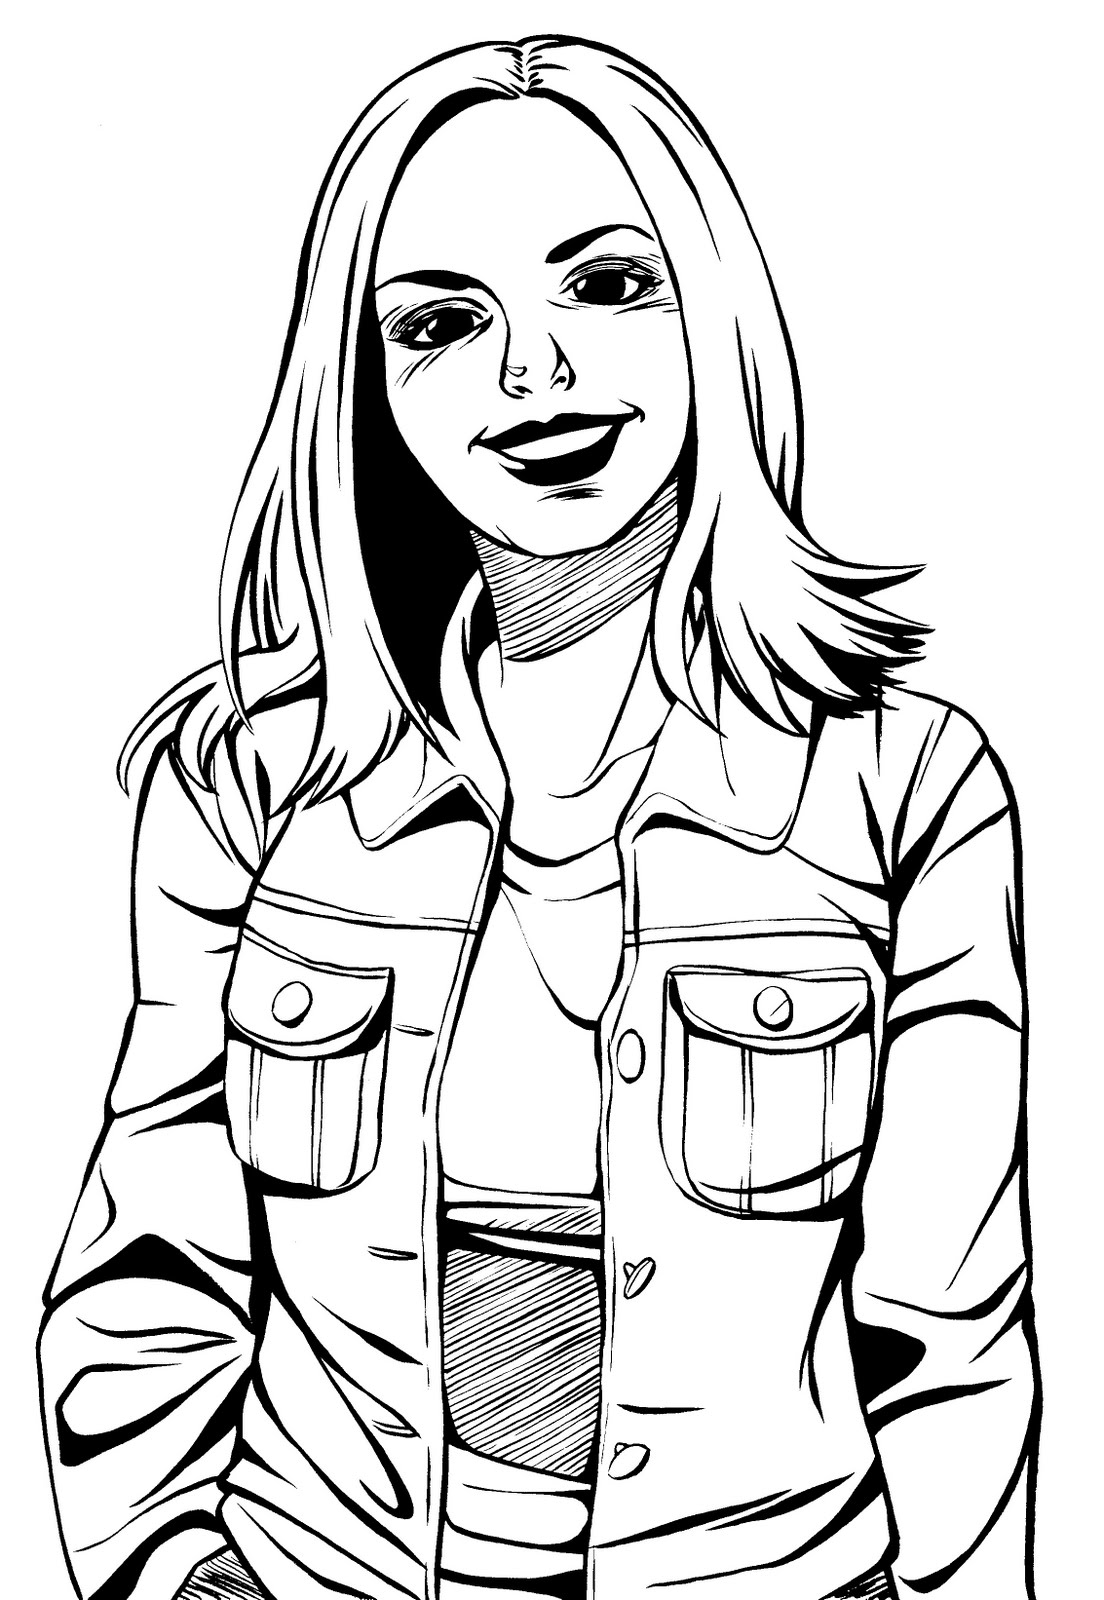 natalie coloring pages - photo#44